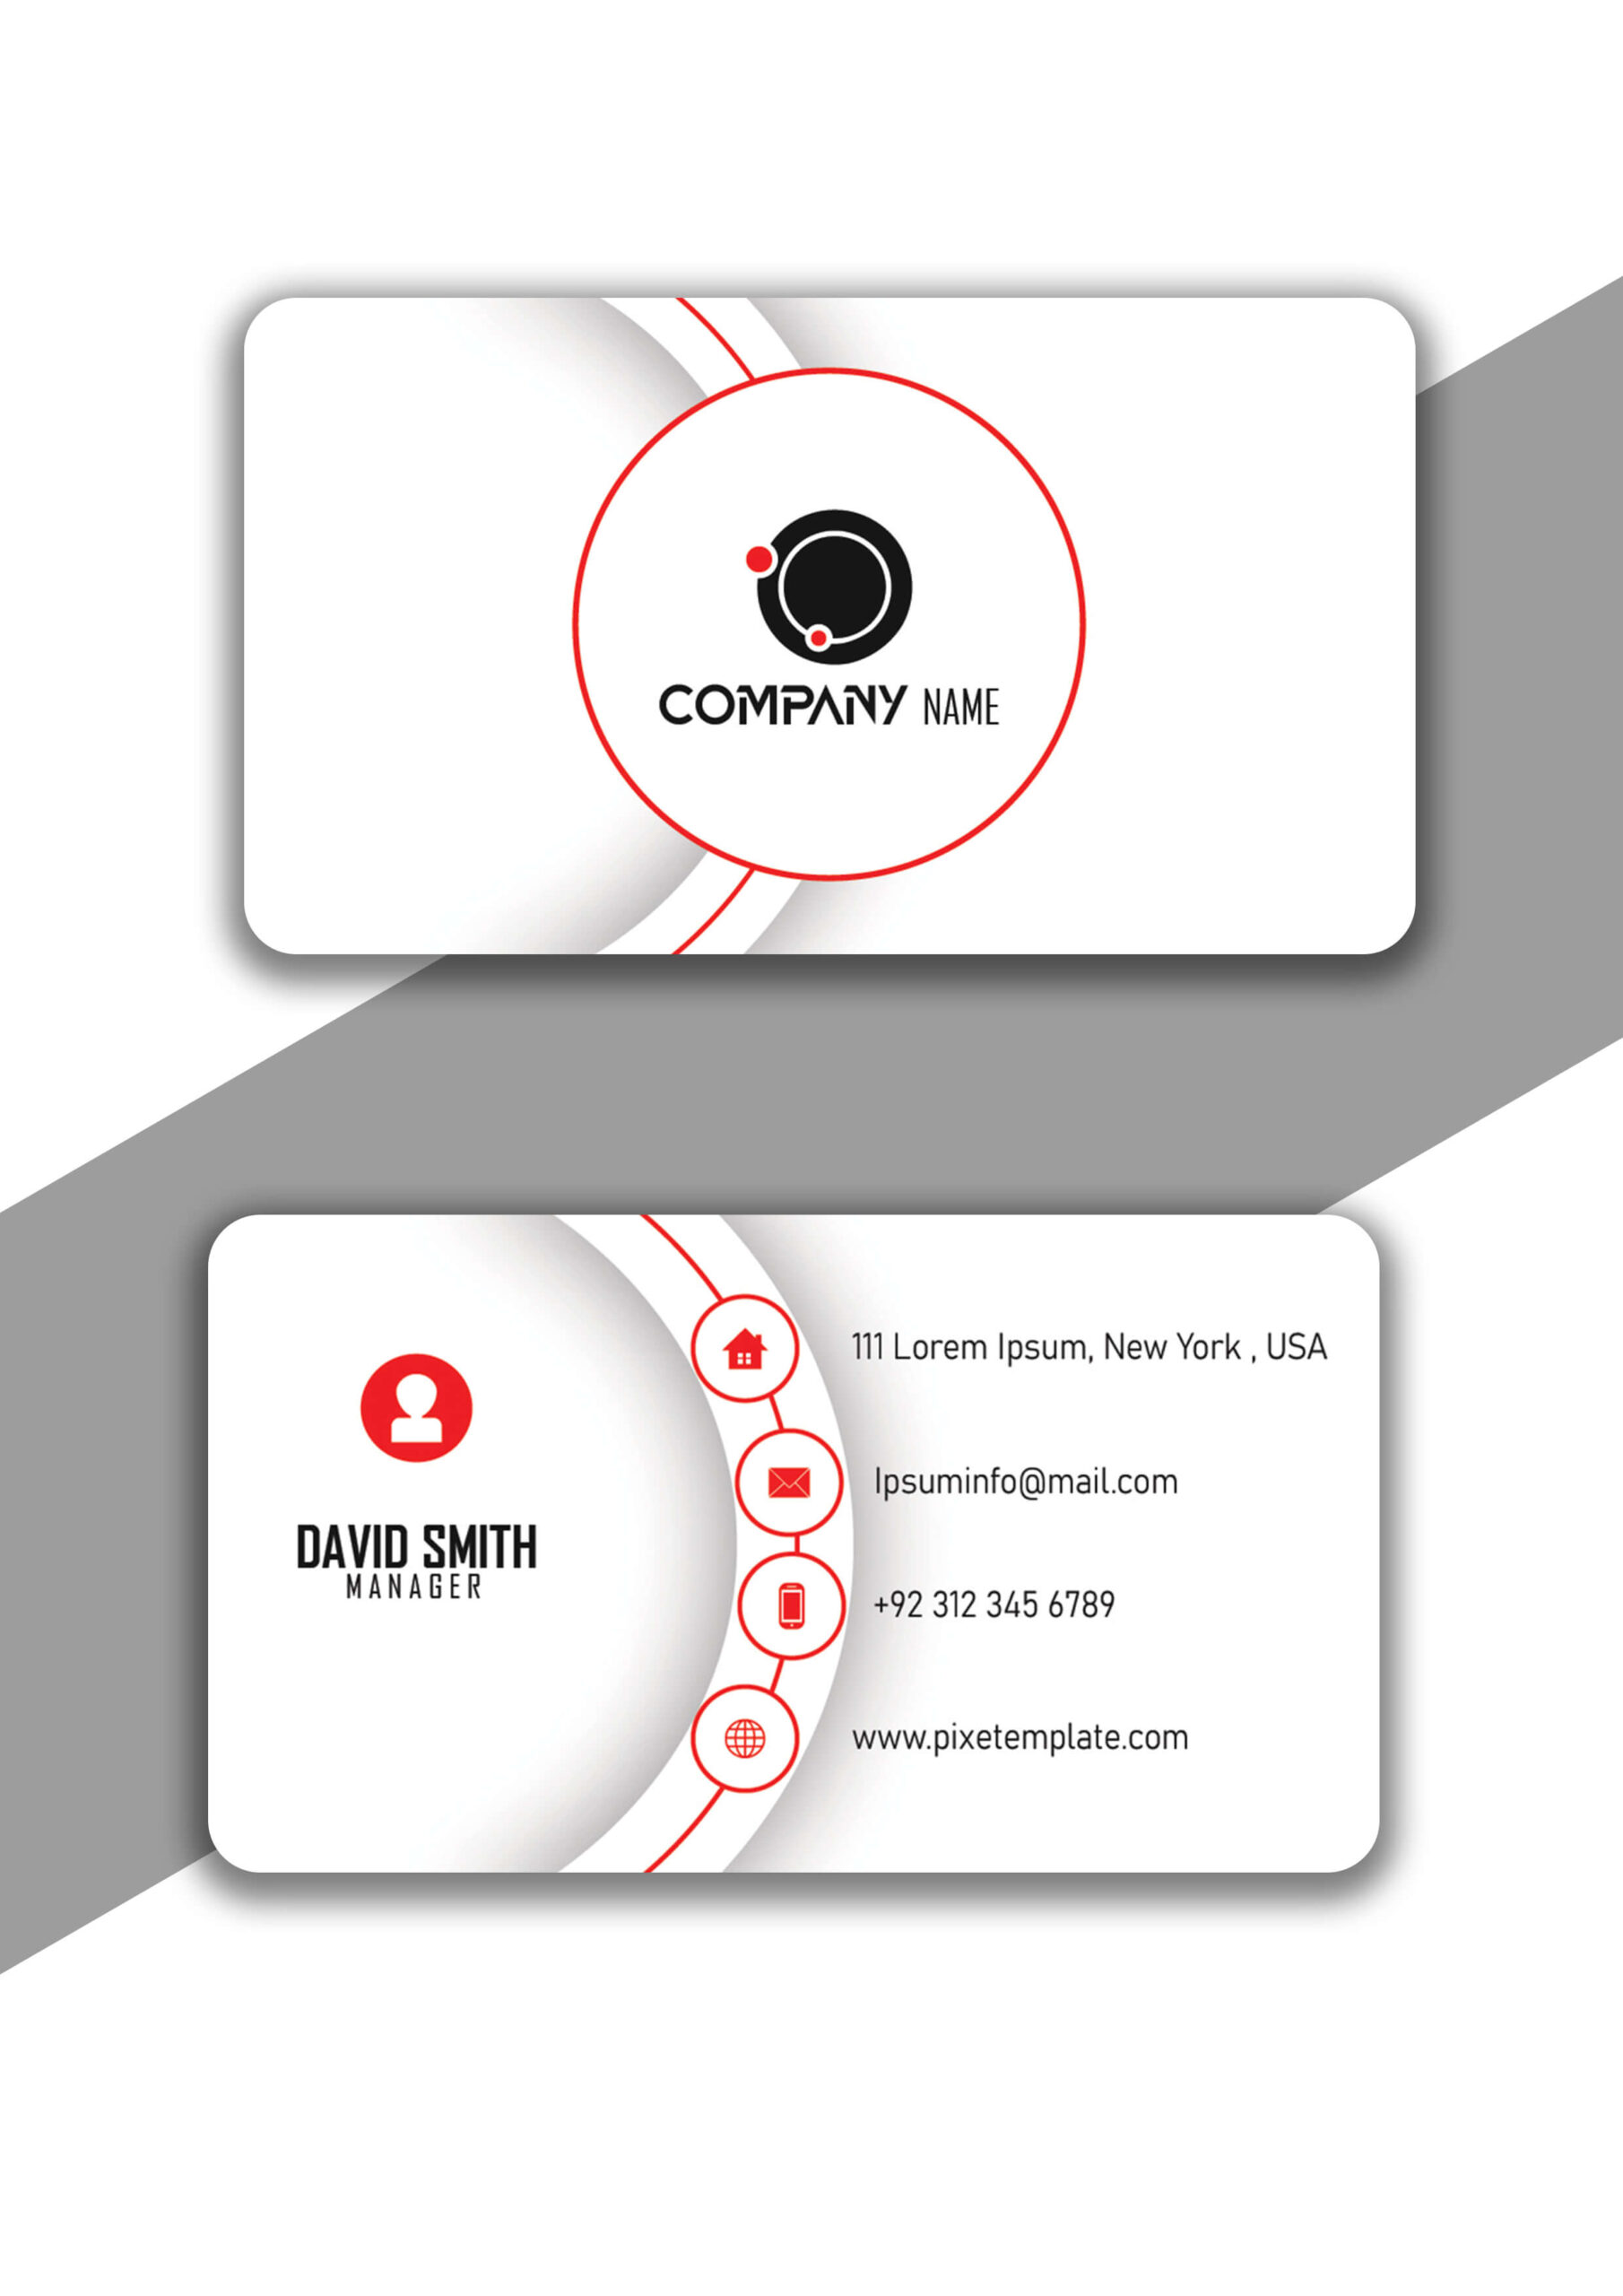 Red and Black Simple Business Card Design in Illustrator